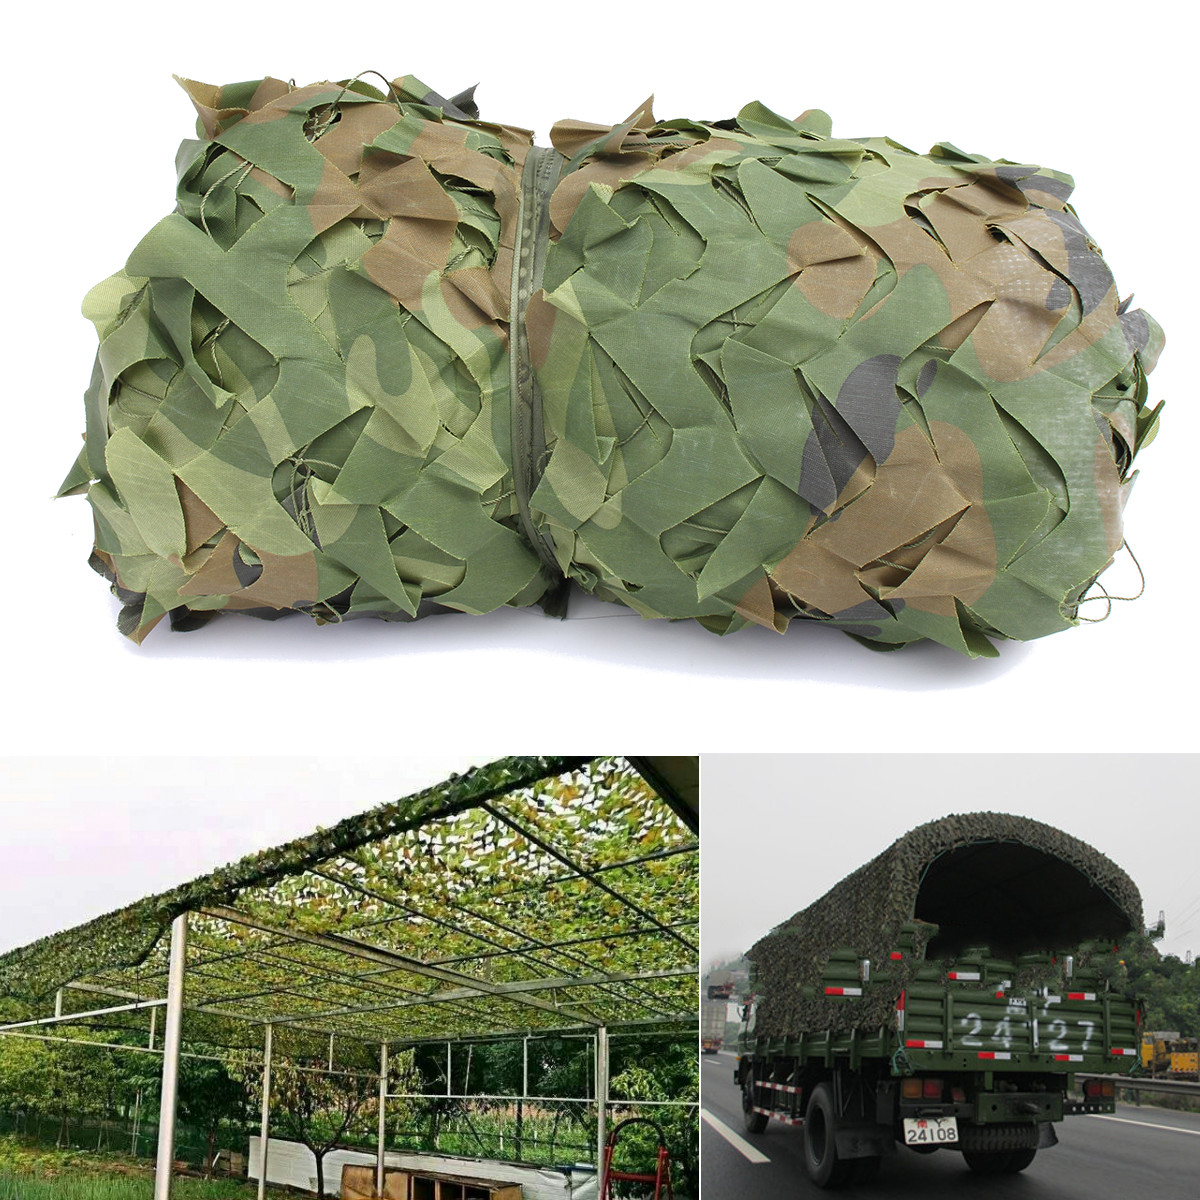 1.5X10m Woodland Leaves Camouflage Netting Sun Shelter Army Camo Hunting Camp Cover Net1.5X10m Woodland Leaves Camouflage Netting Sun Shelter Army Camo Hunting Camp Cover Net